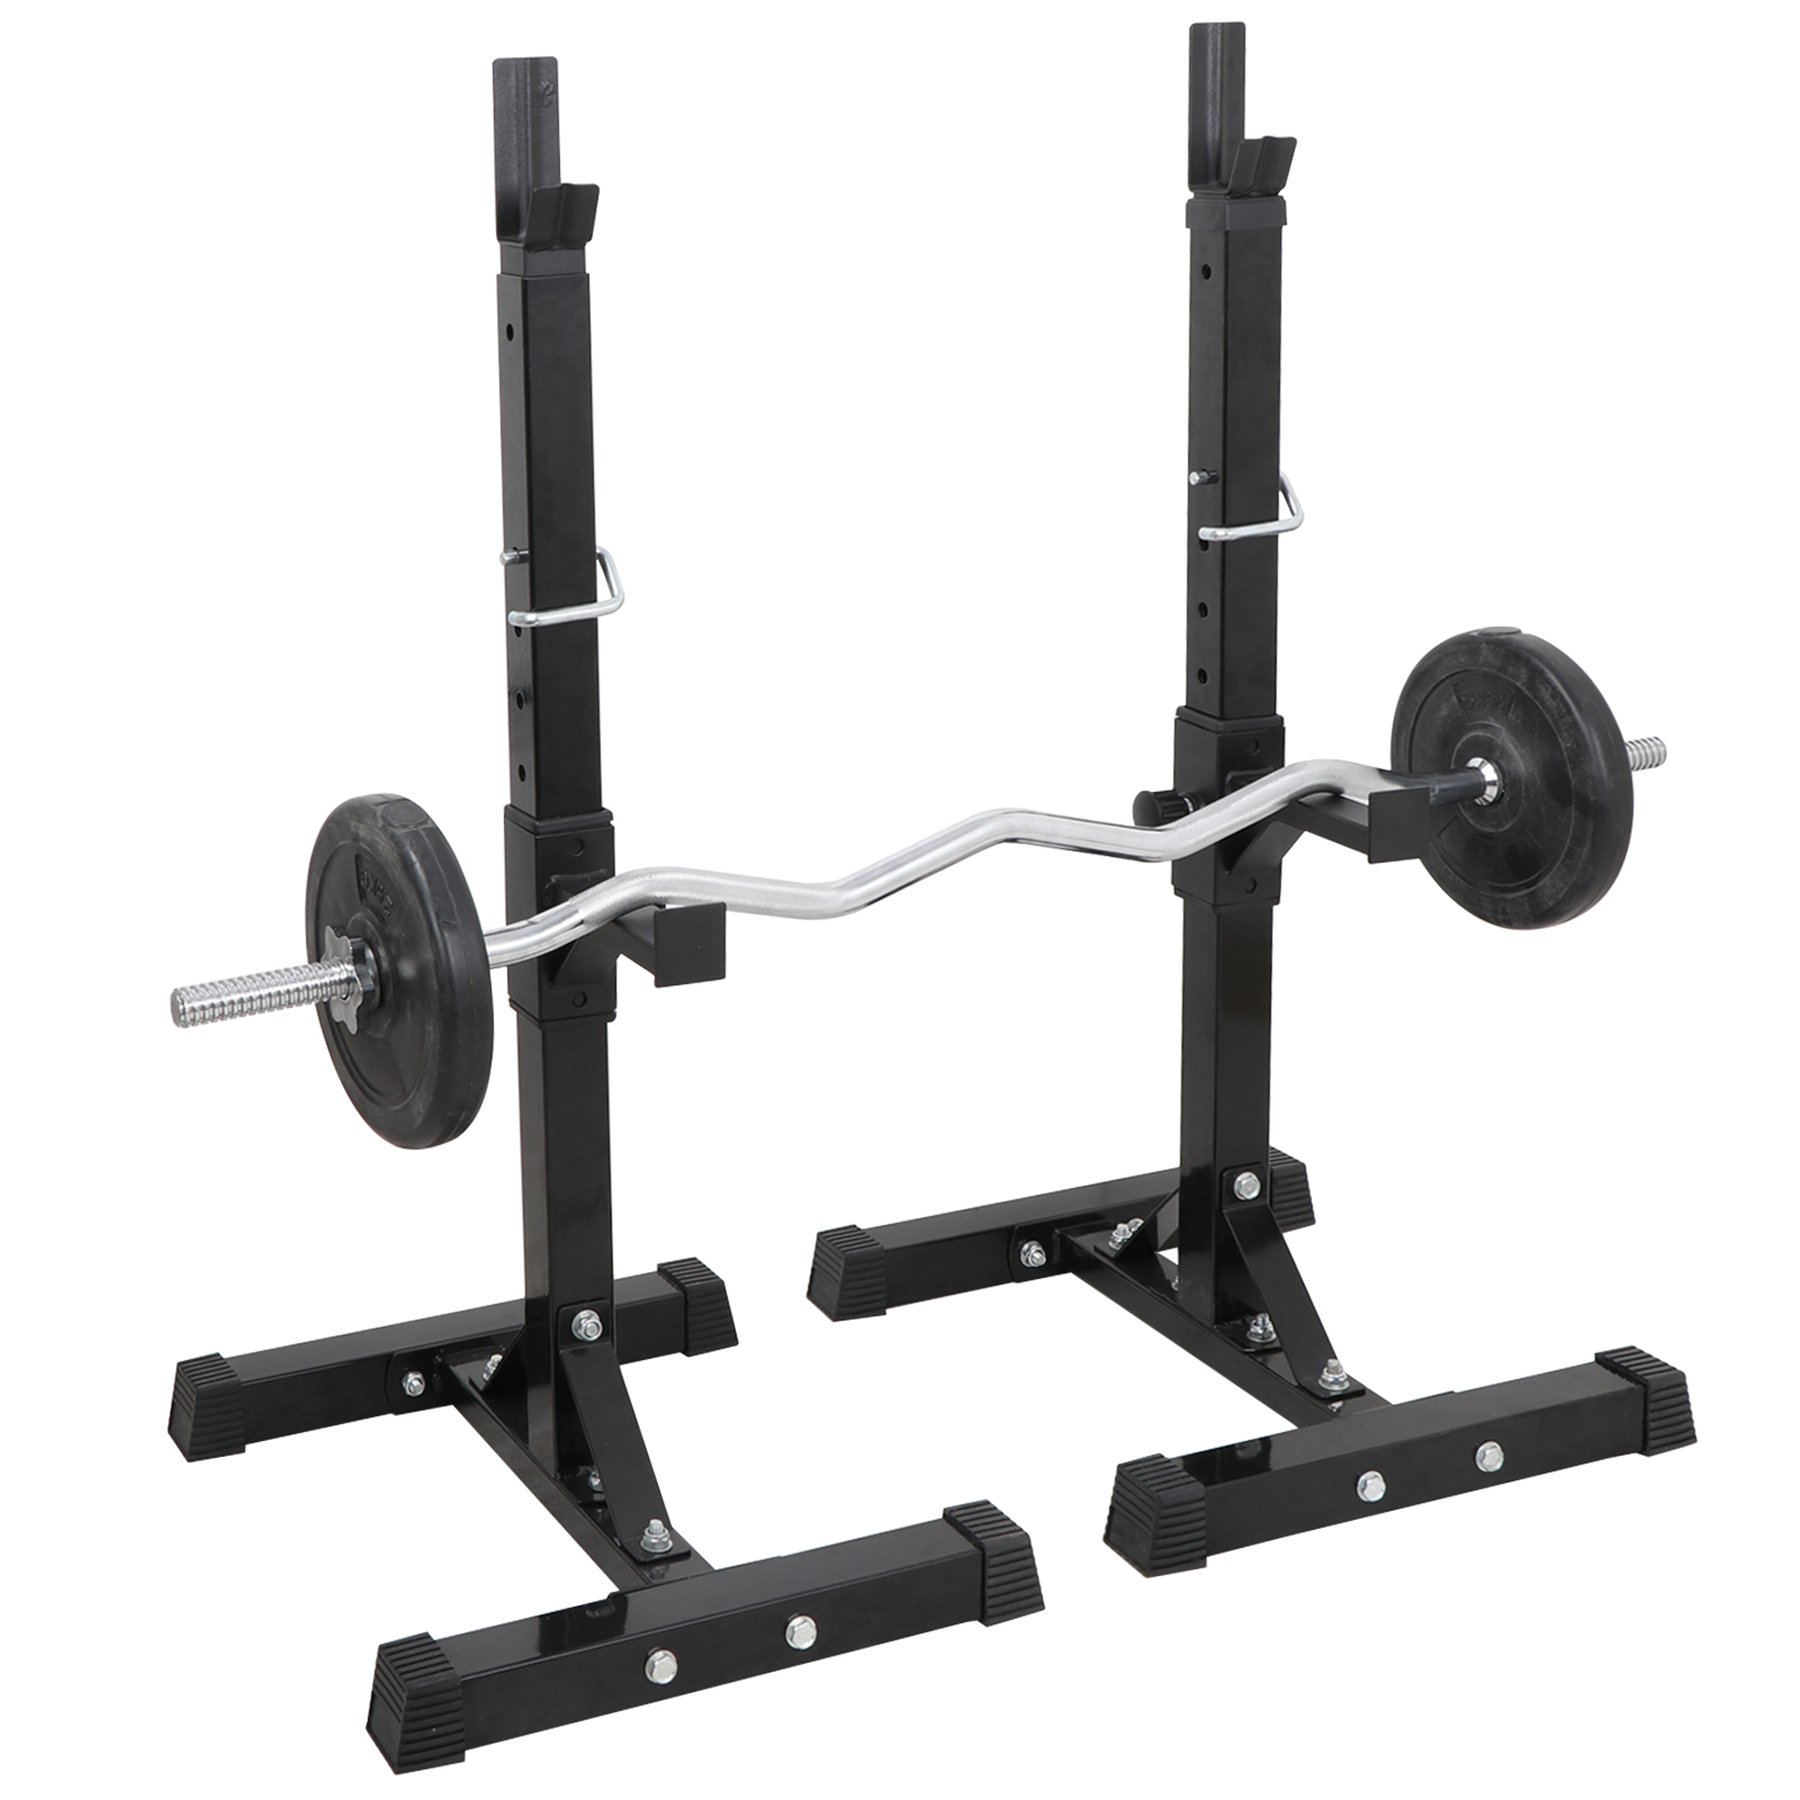 F2C Pair of Adjustable 41''-66'' Sturdy Steel Squat Rack Barbell Free Bench Press Stand Gym/Home Gym Portable Dumbbell Racks Stand Max 550lbs by F2C (Image #2)